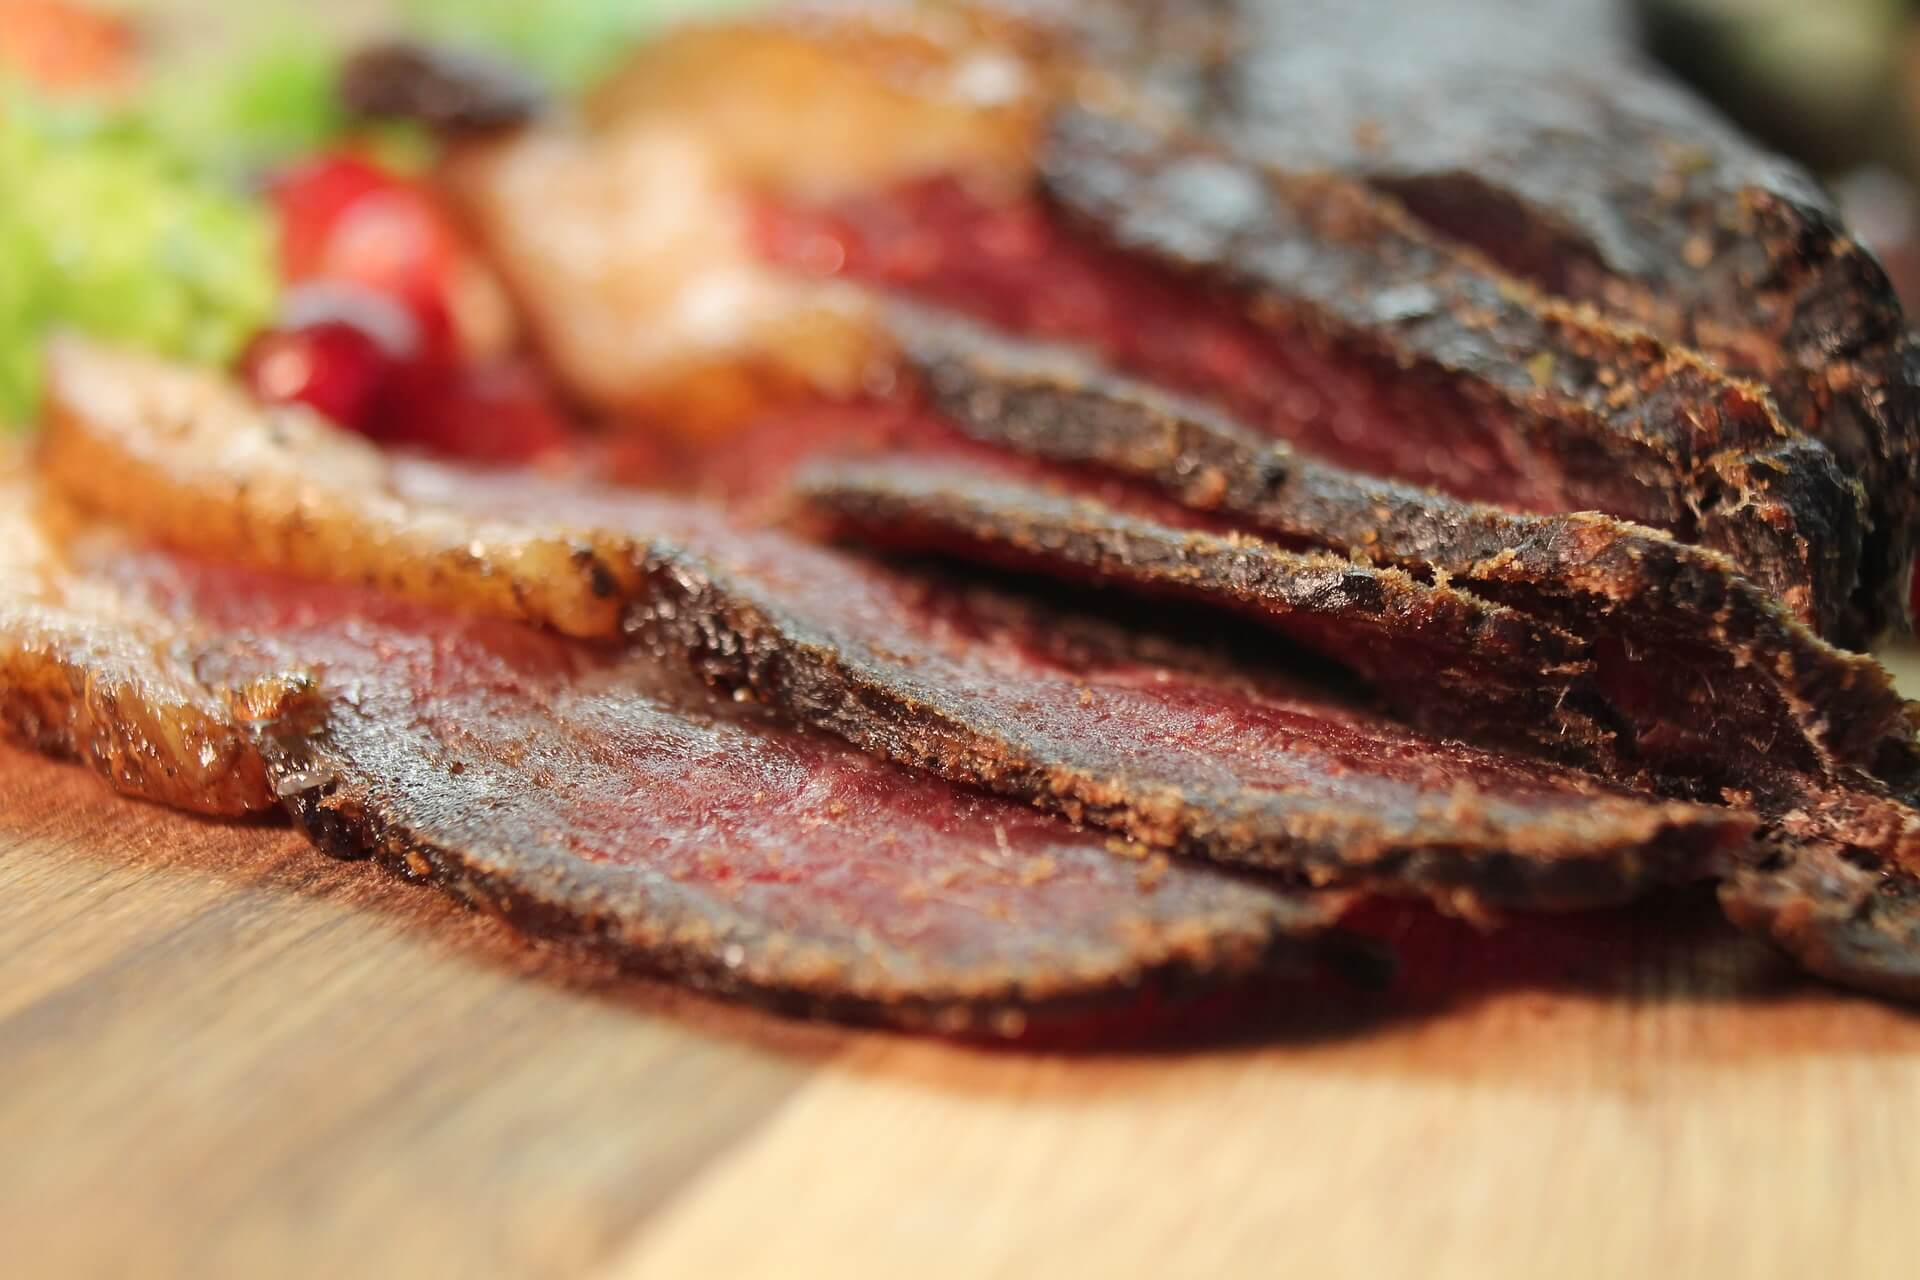 Survival Food: 5 Easy And Cheap Ways To Make Jerky At Home